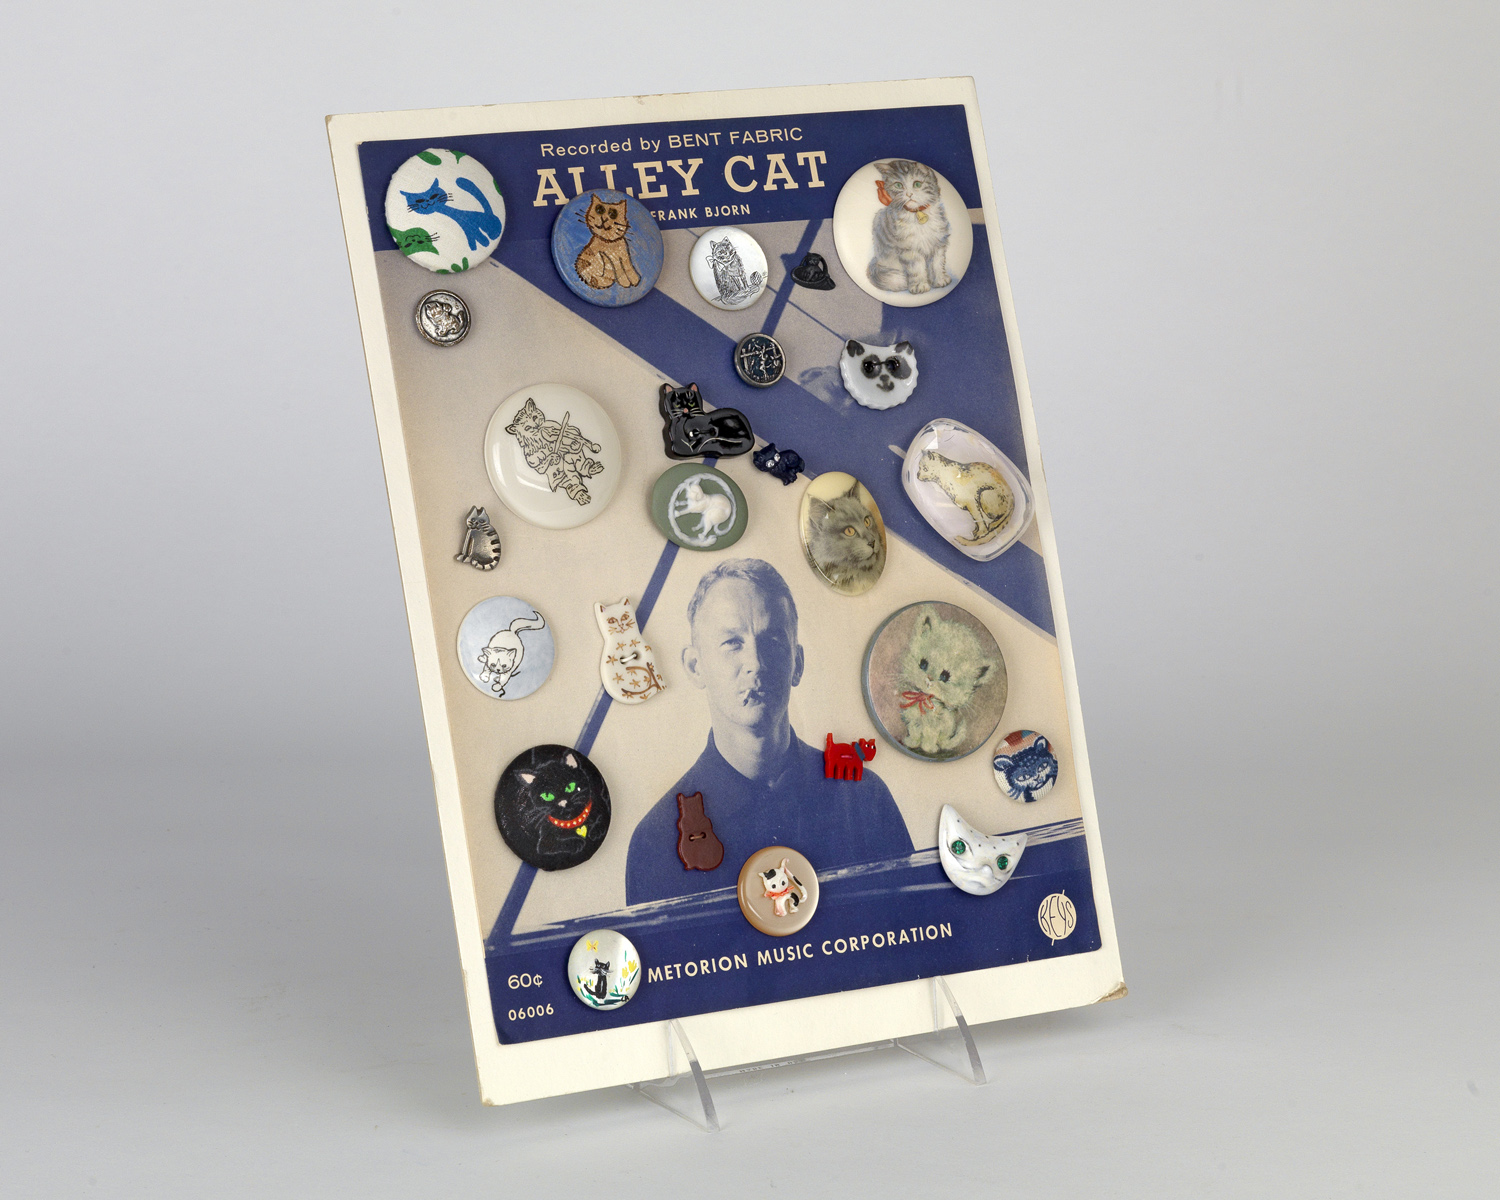 Buttons highlighted with images of cats set against the score of Alley Cat. Circa 1961